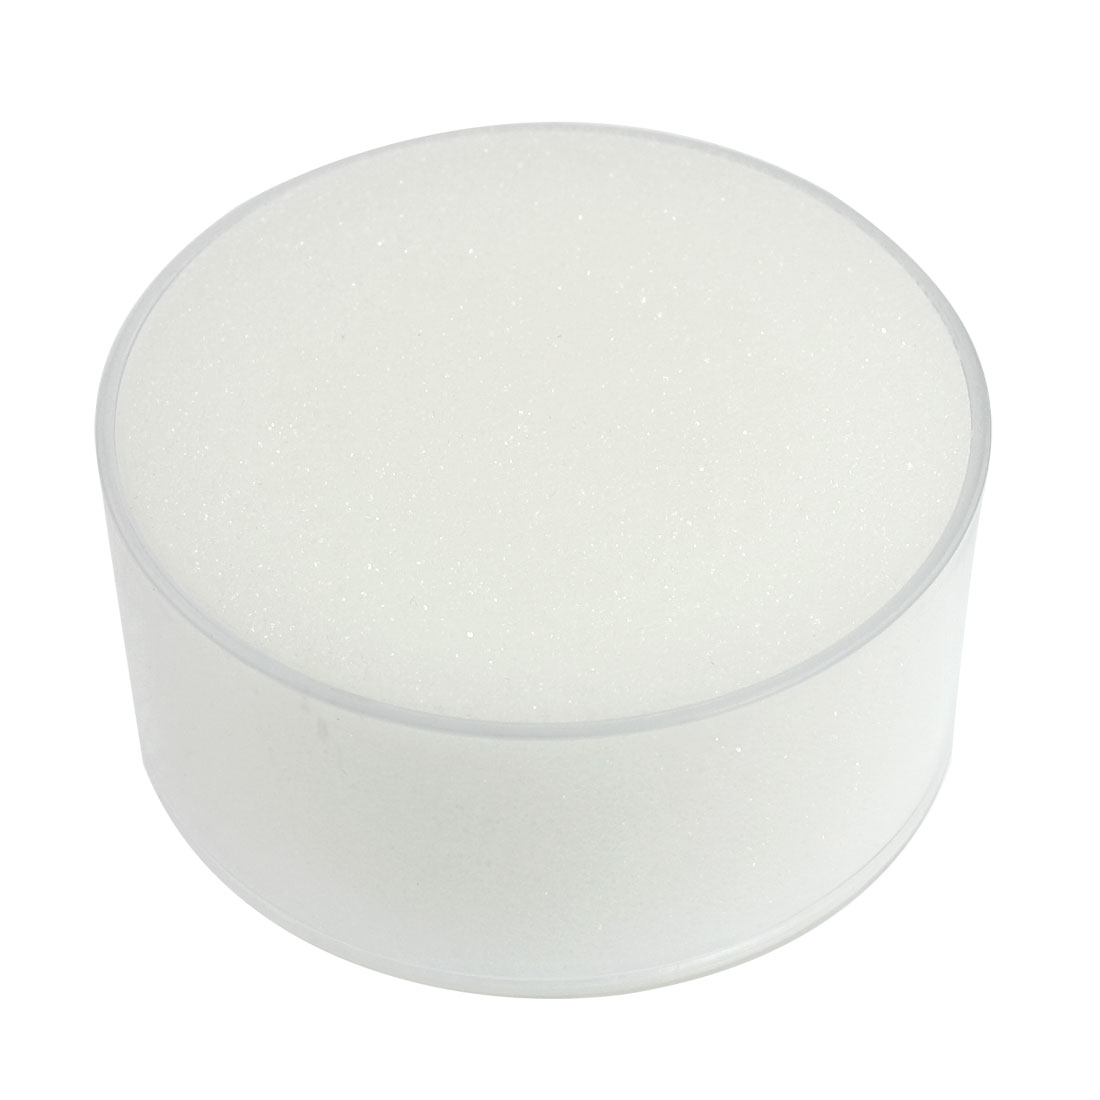 Clear Plastic Round Case White Sponge Finger Wet for Money Casher